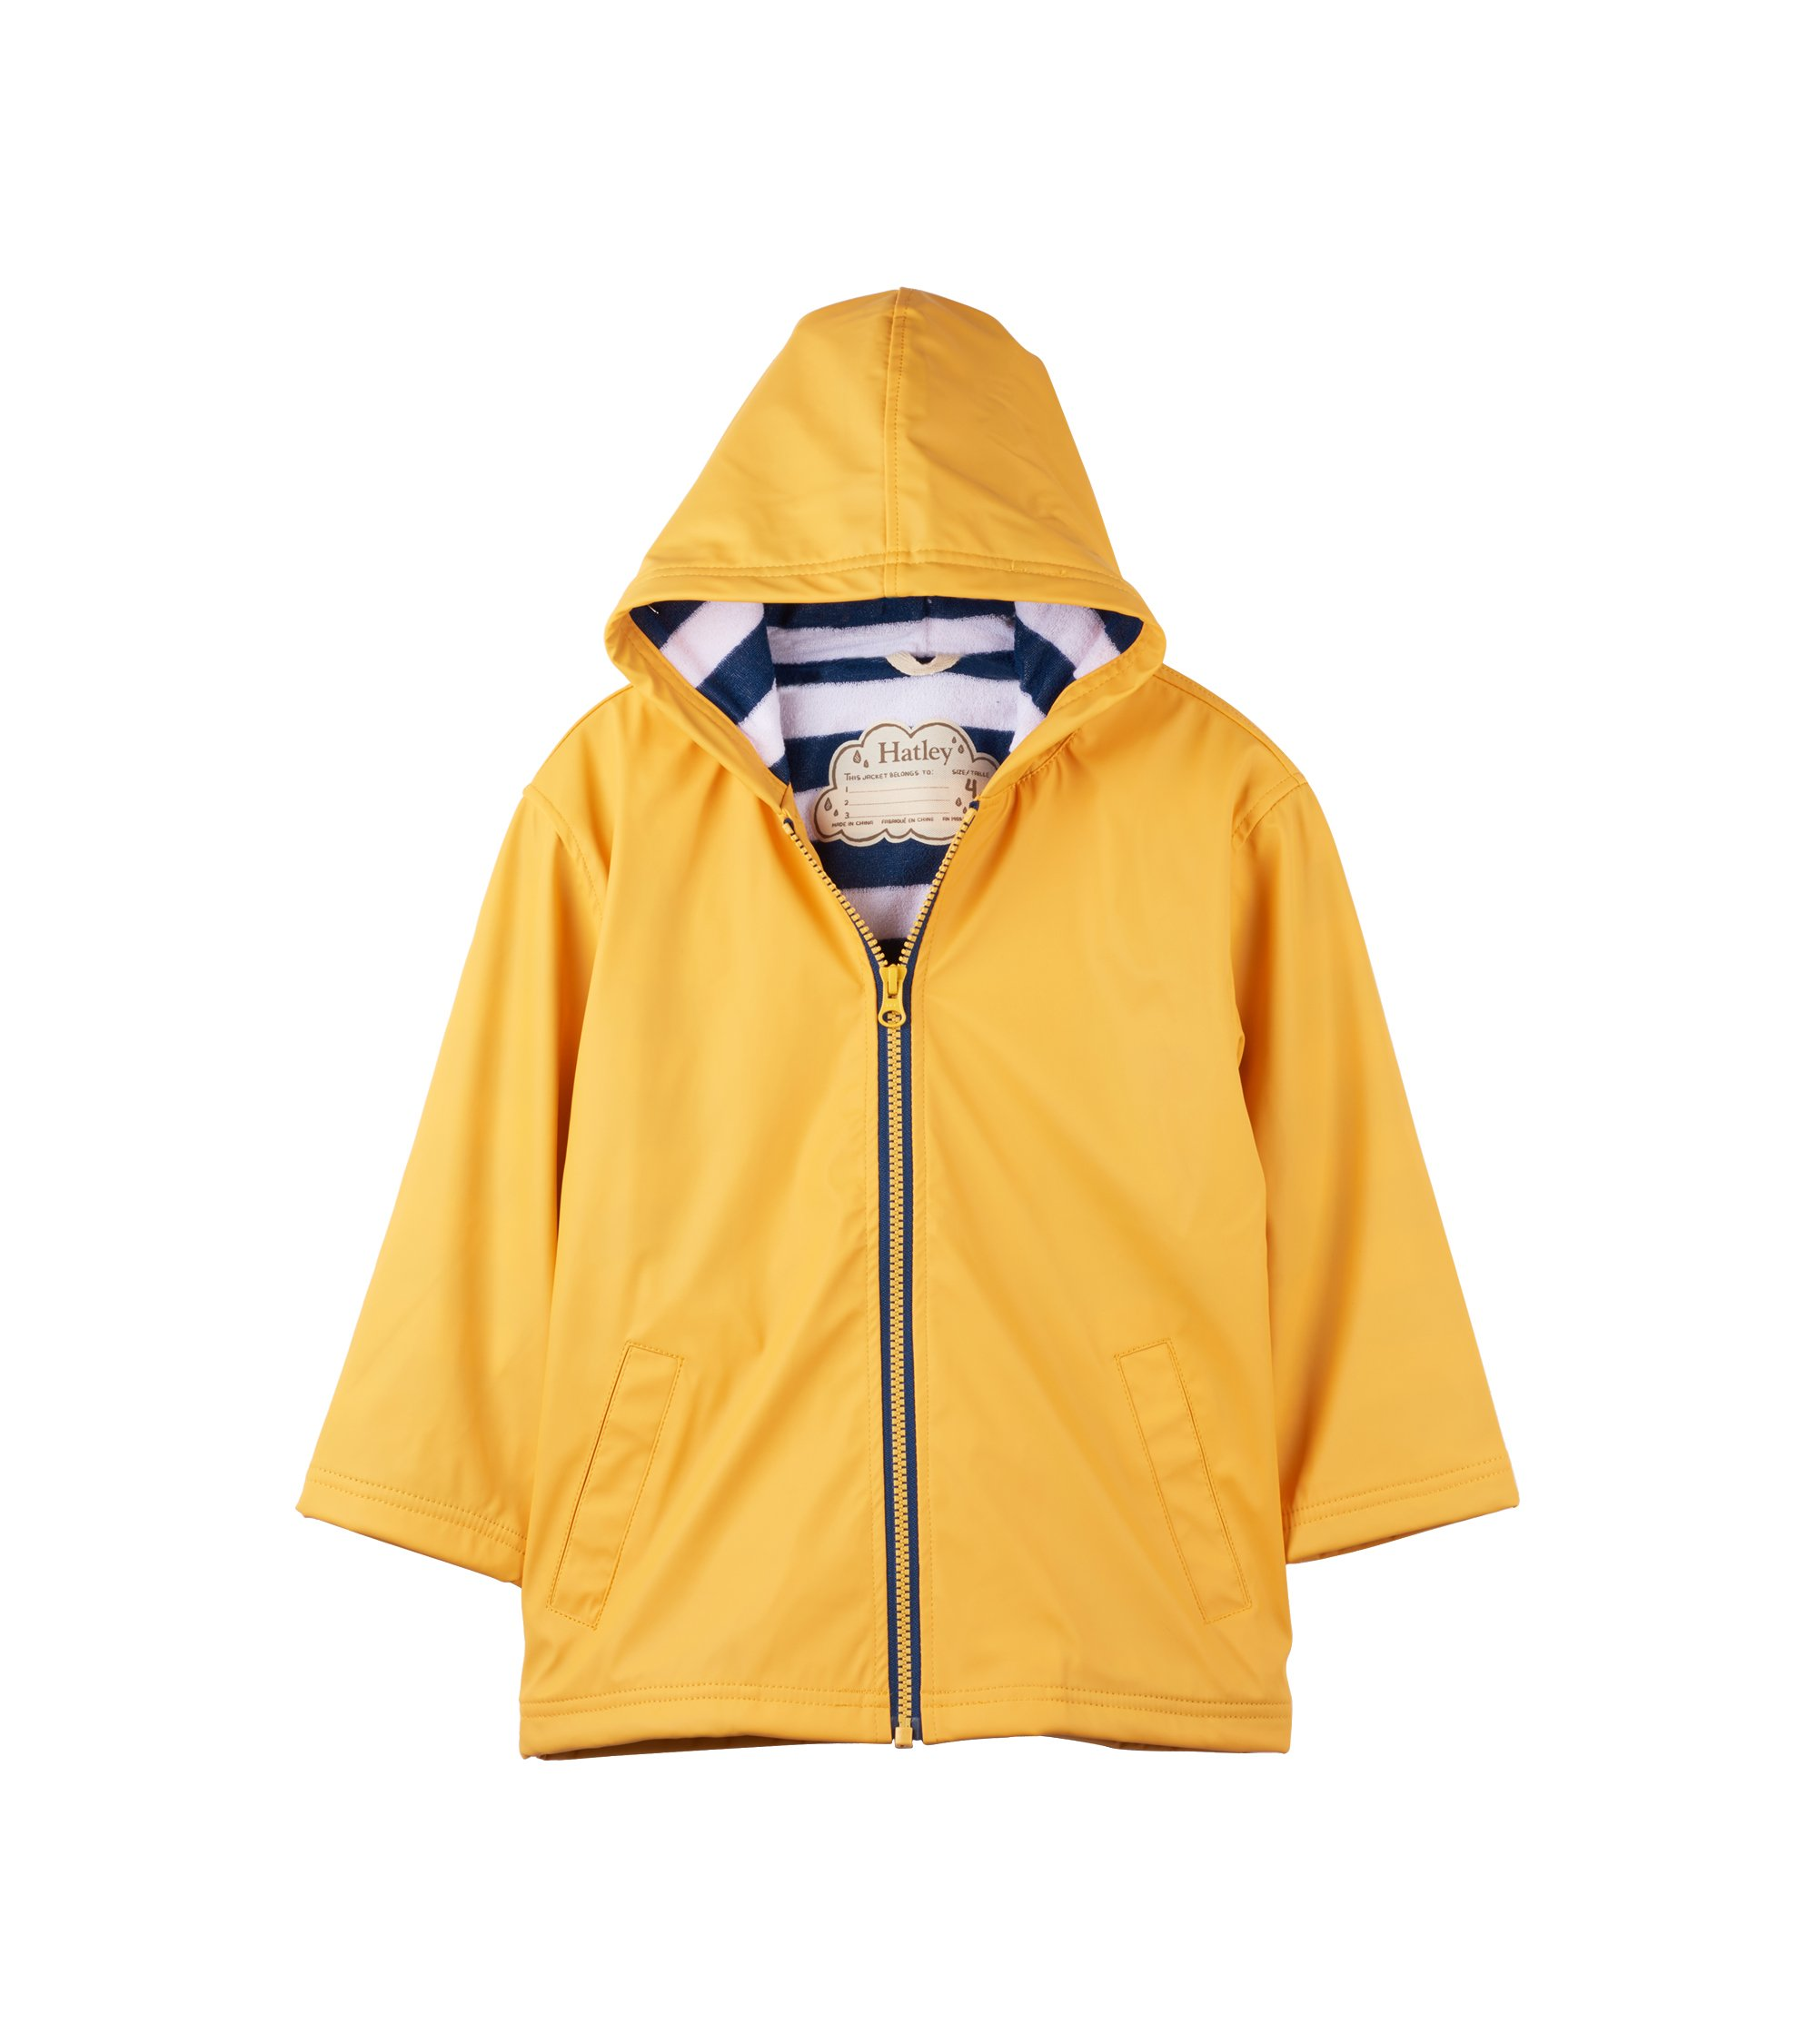 Hatley Boys' Little Splash Jacket, Classic Yellow, 6